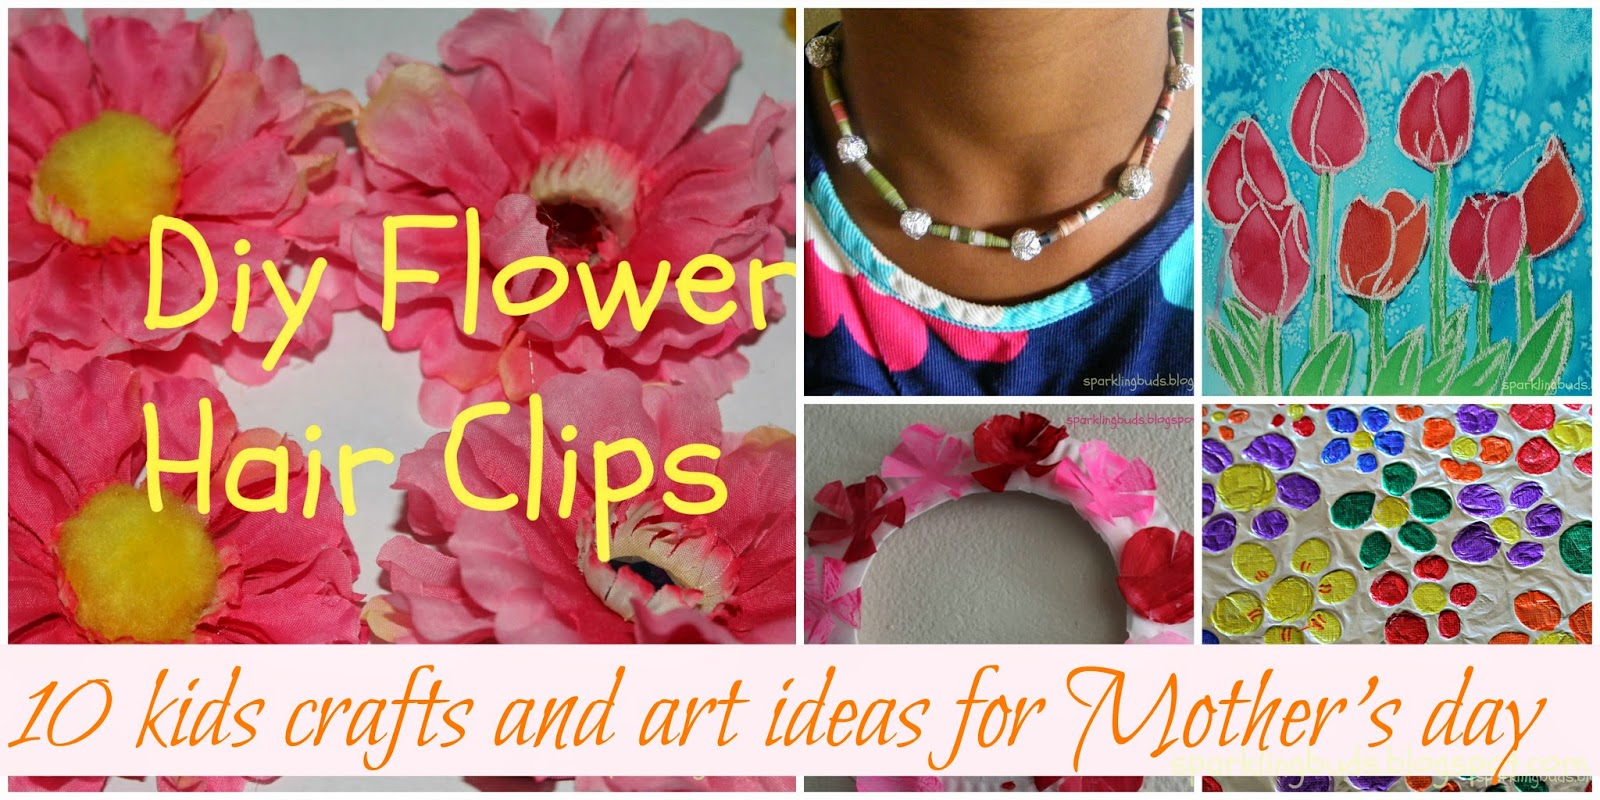 Ten Kids Crafts And Art Ideas For Mothers Day Sparklingbuds